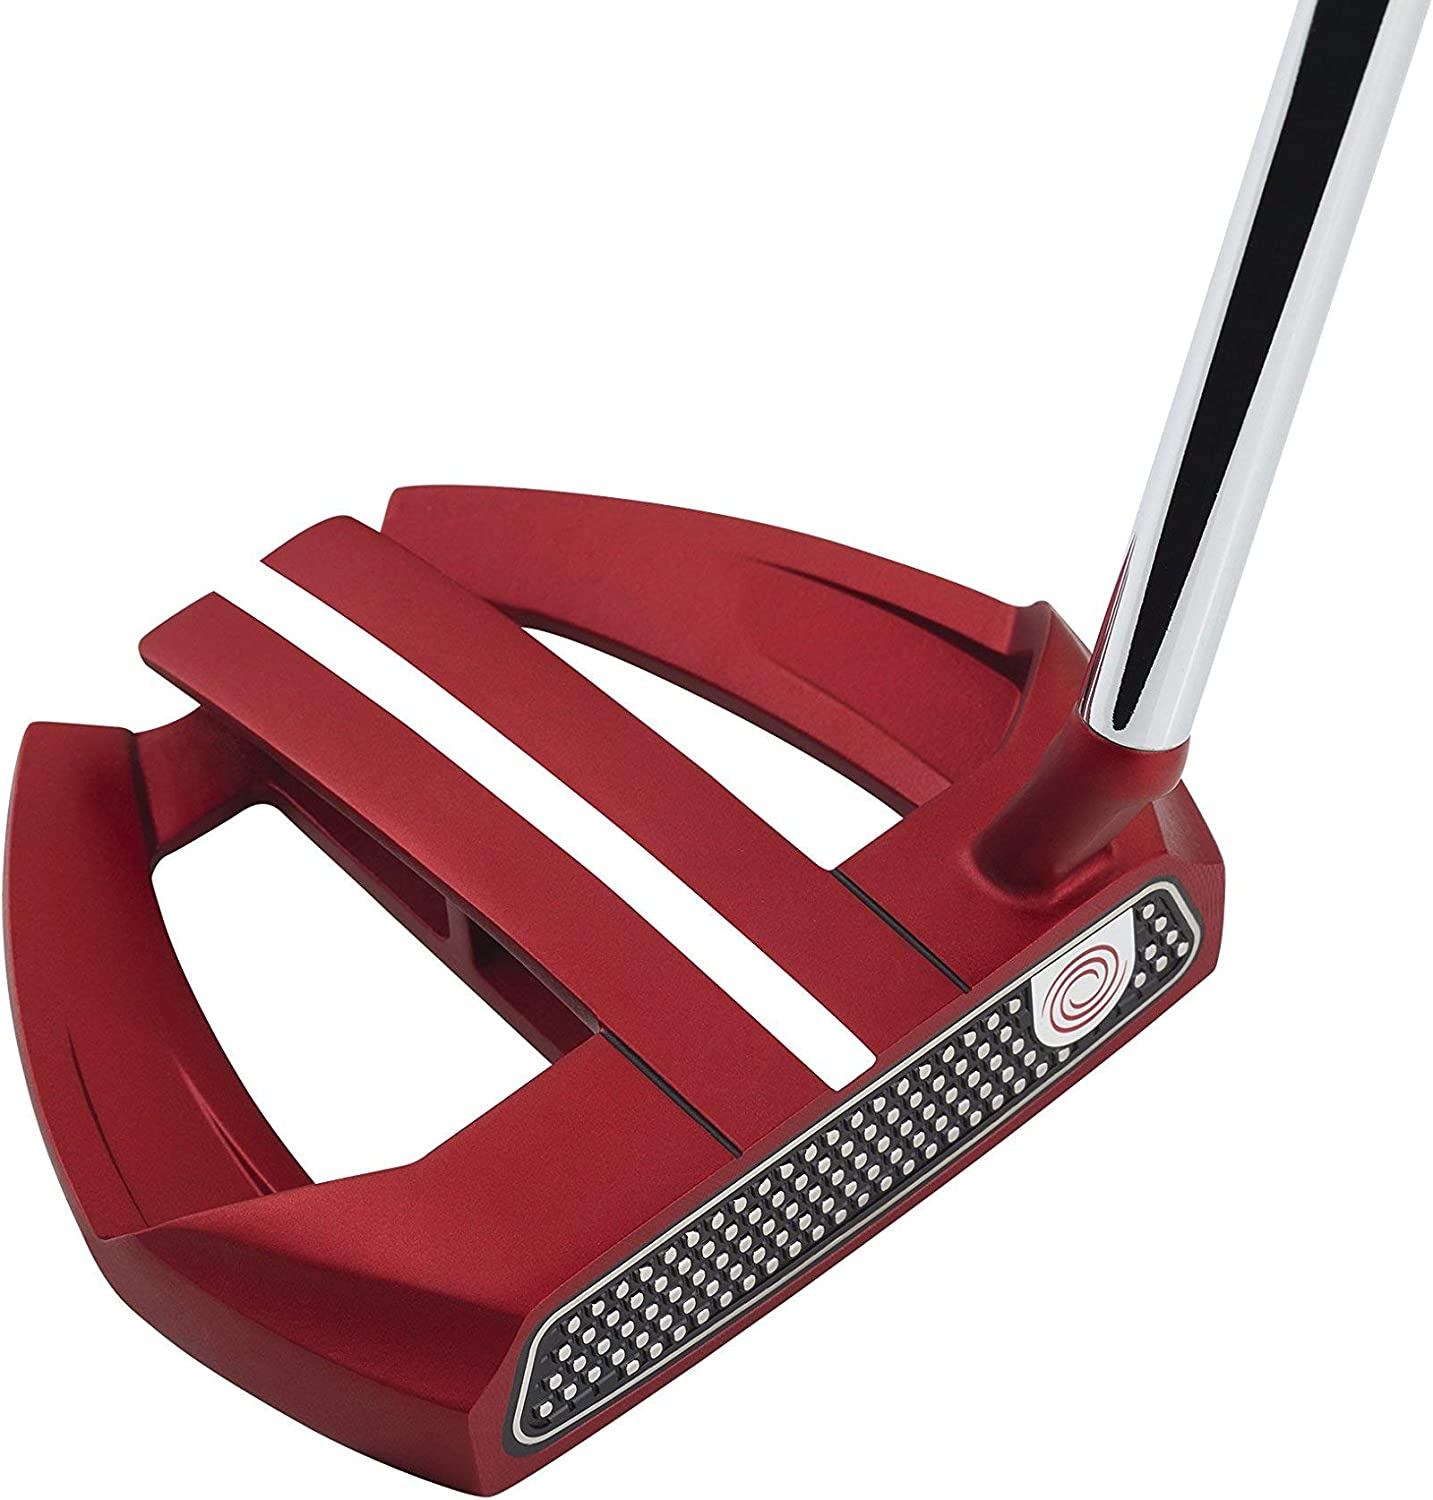 Odyssey O-Works Red Marxman Slant Putter, 35 in (Renewed)